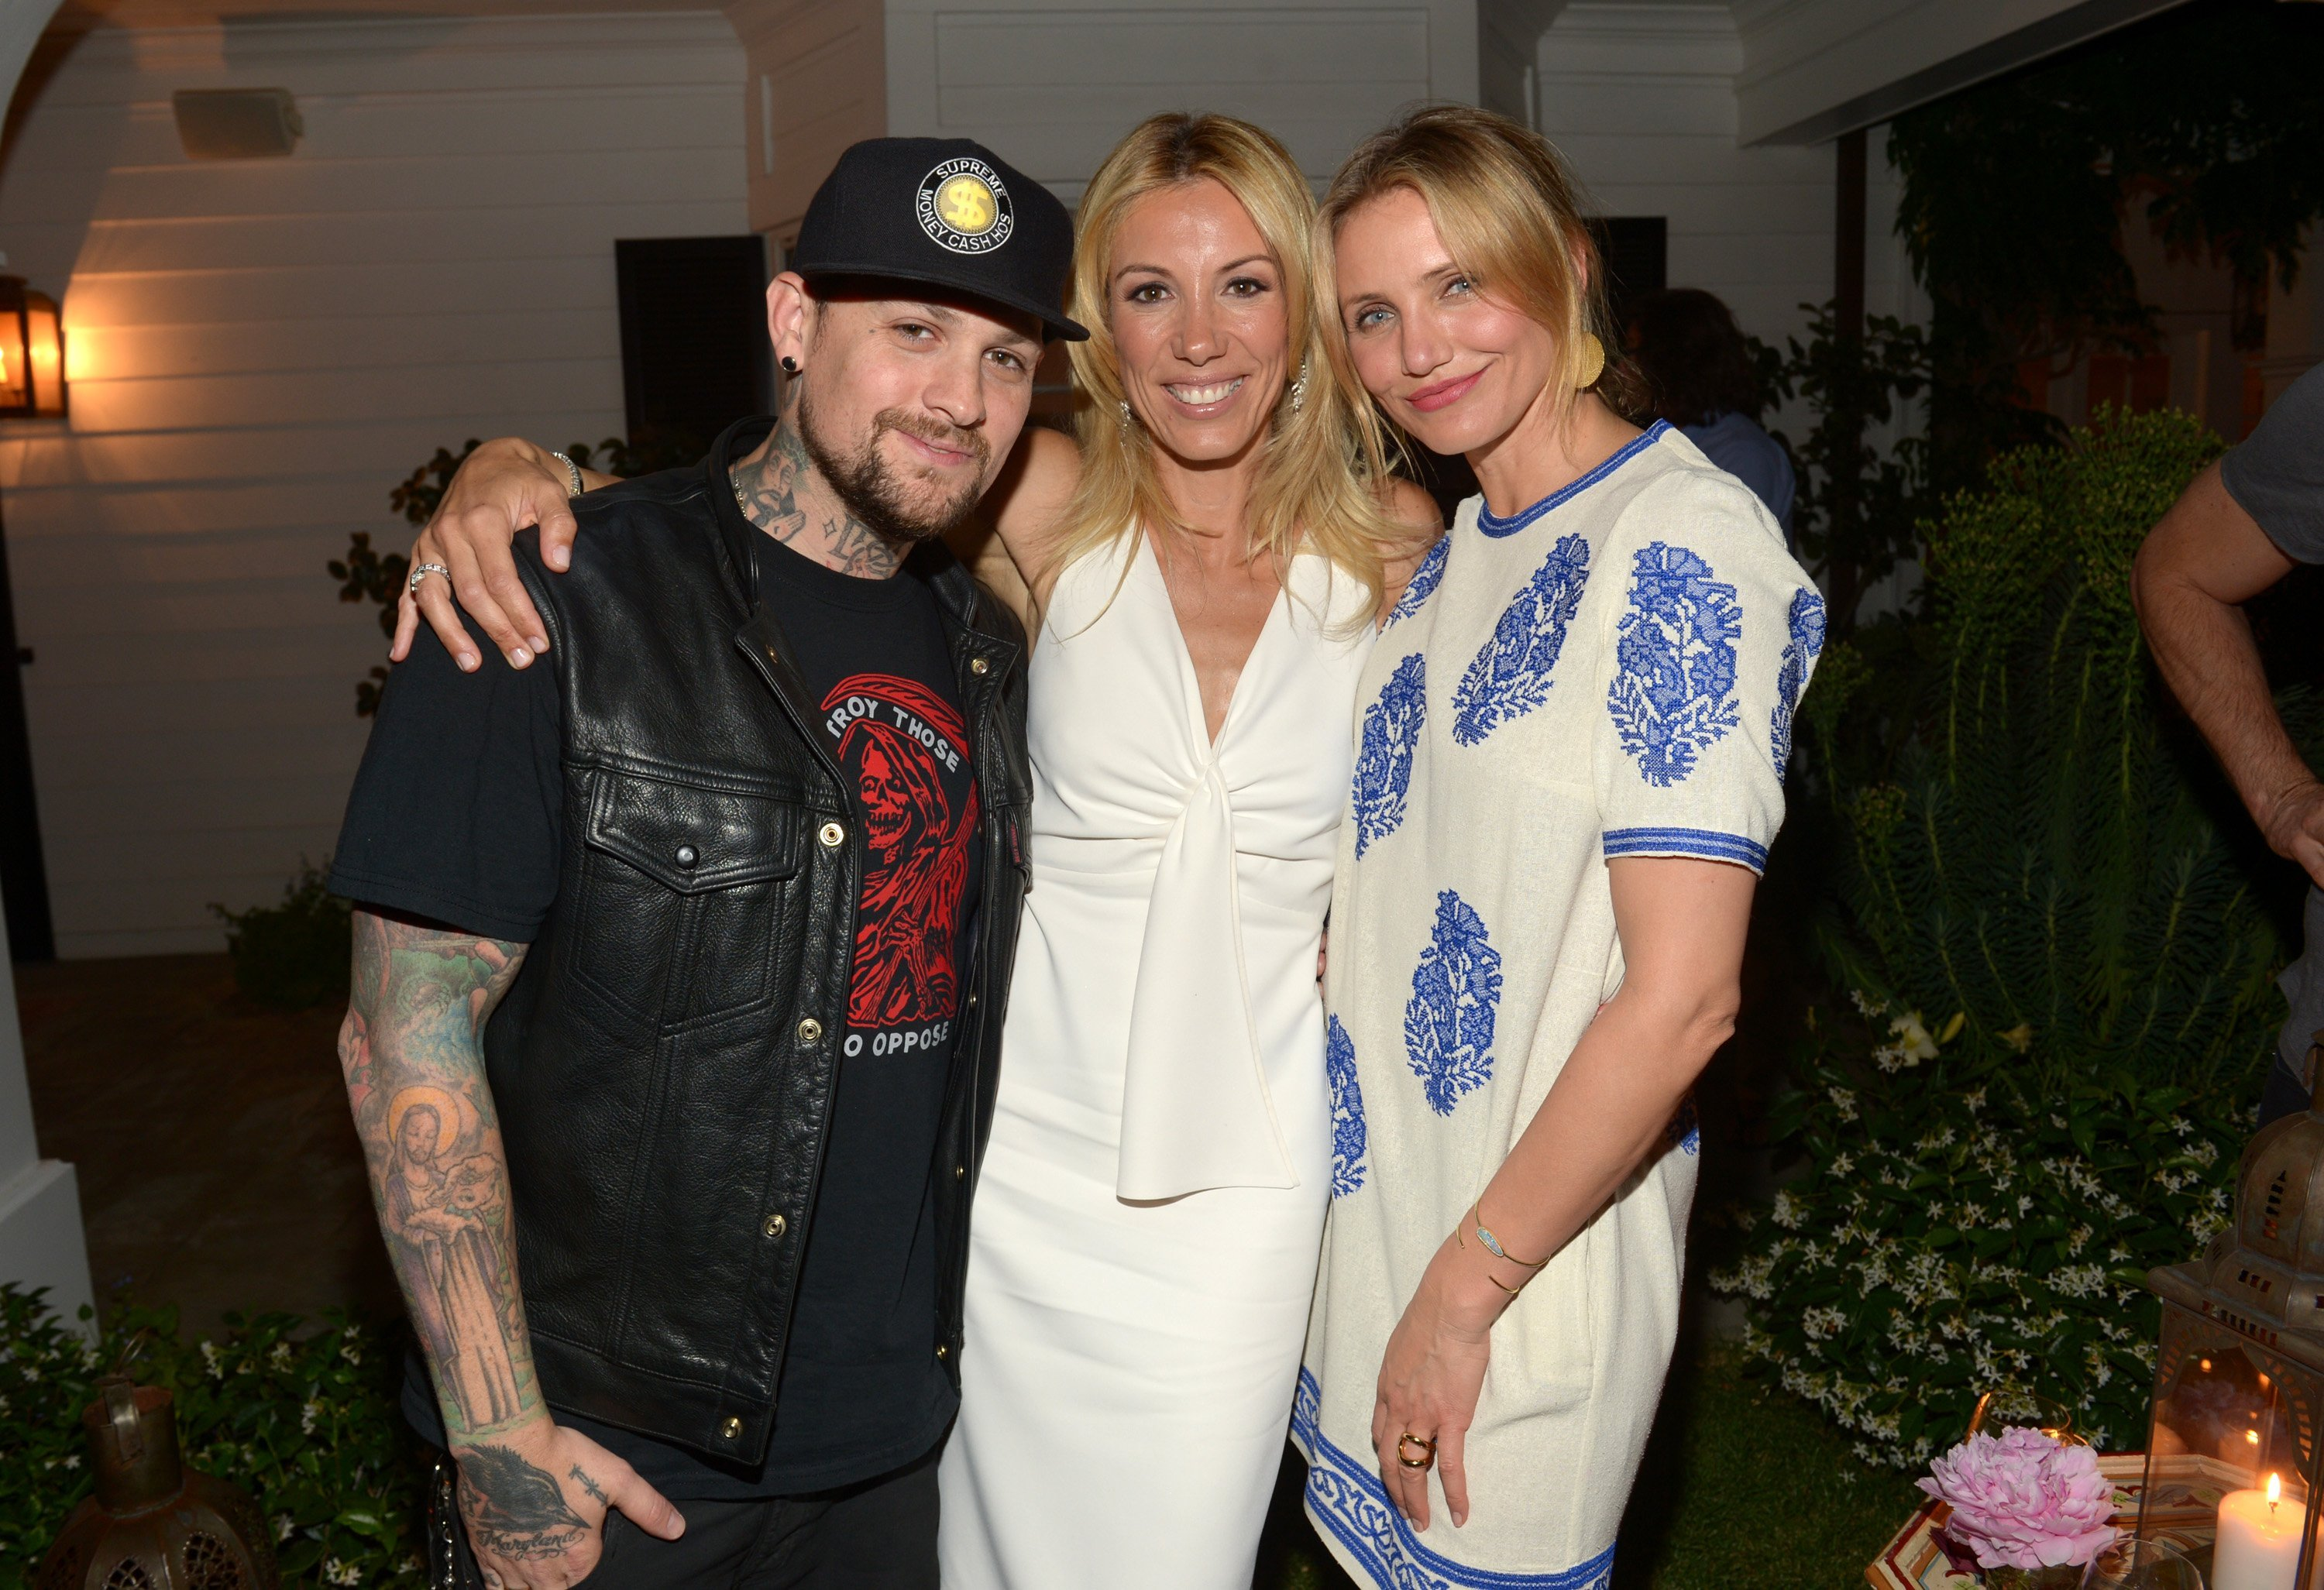 Benji Madden, author Vicky Vlachonis, and actress Cameron Diaz celebrate the launch of The Body Doesn't Lie by Vicky Vlachonis on May 15, 2014, in Los Angeles, California. | Source: Getty Images.